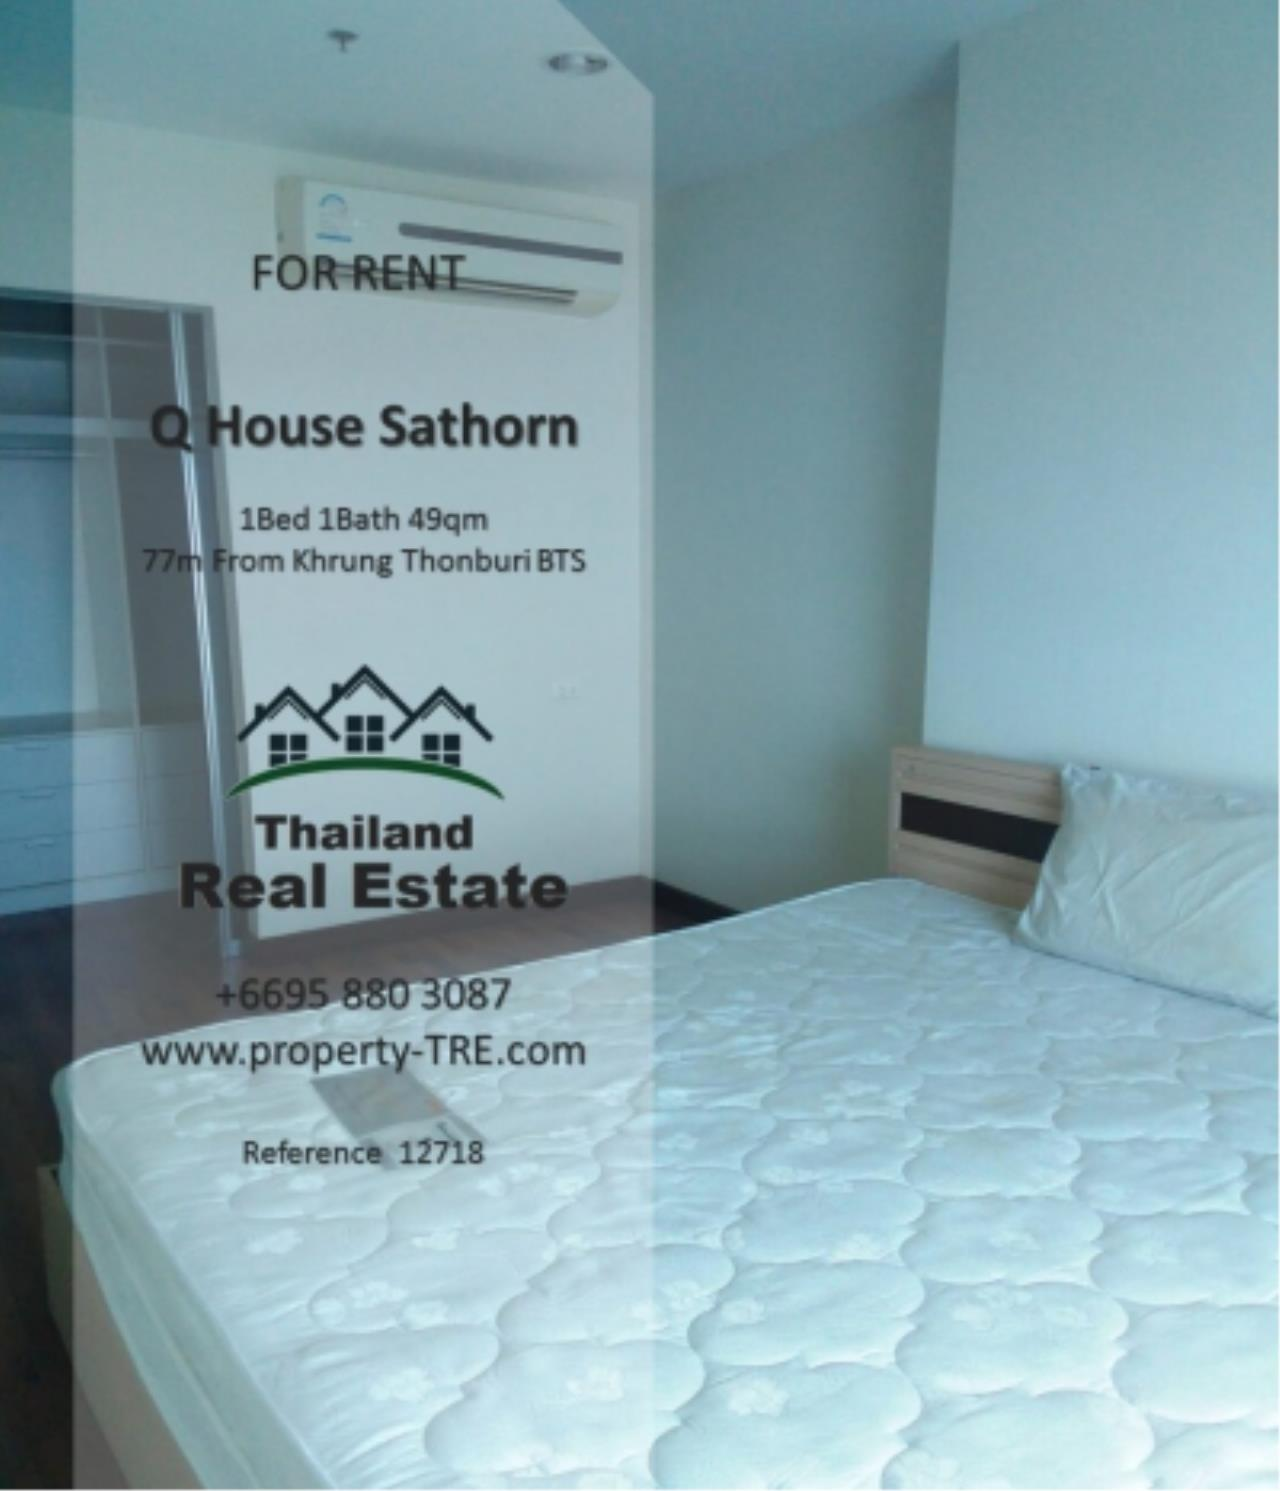 Thailand Real Estate Agency's 1 Bedroom Condo at  Q House  near BTS Khrung Thonburi(12718) 4